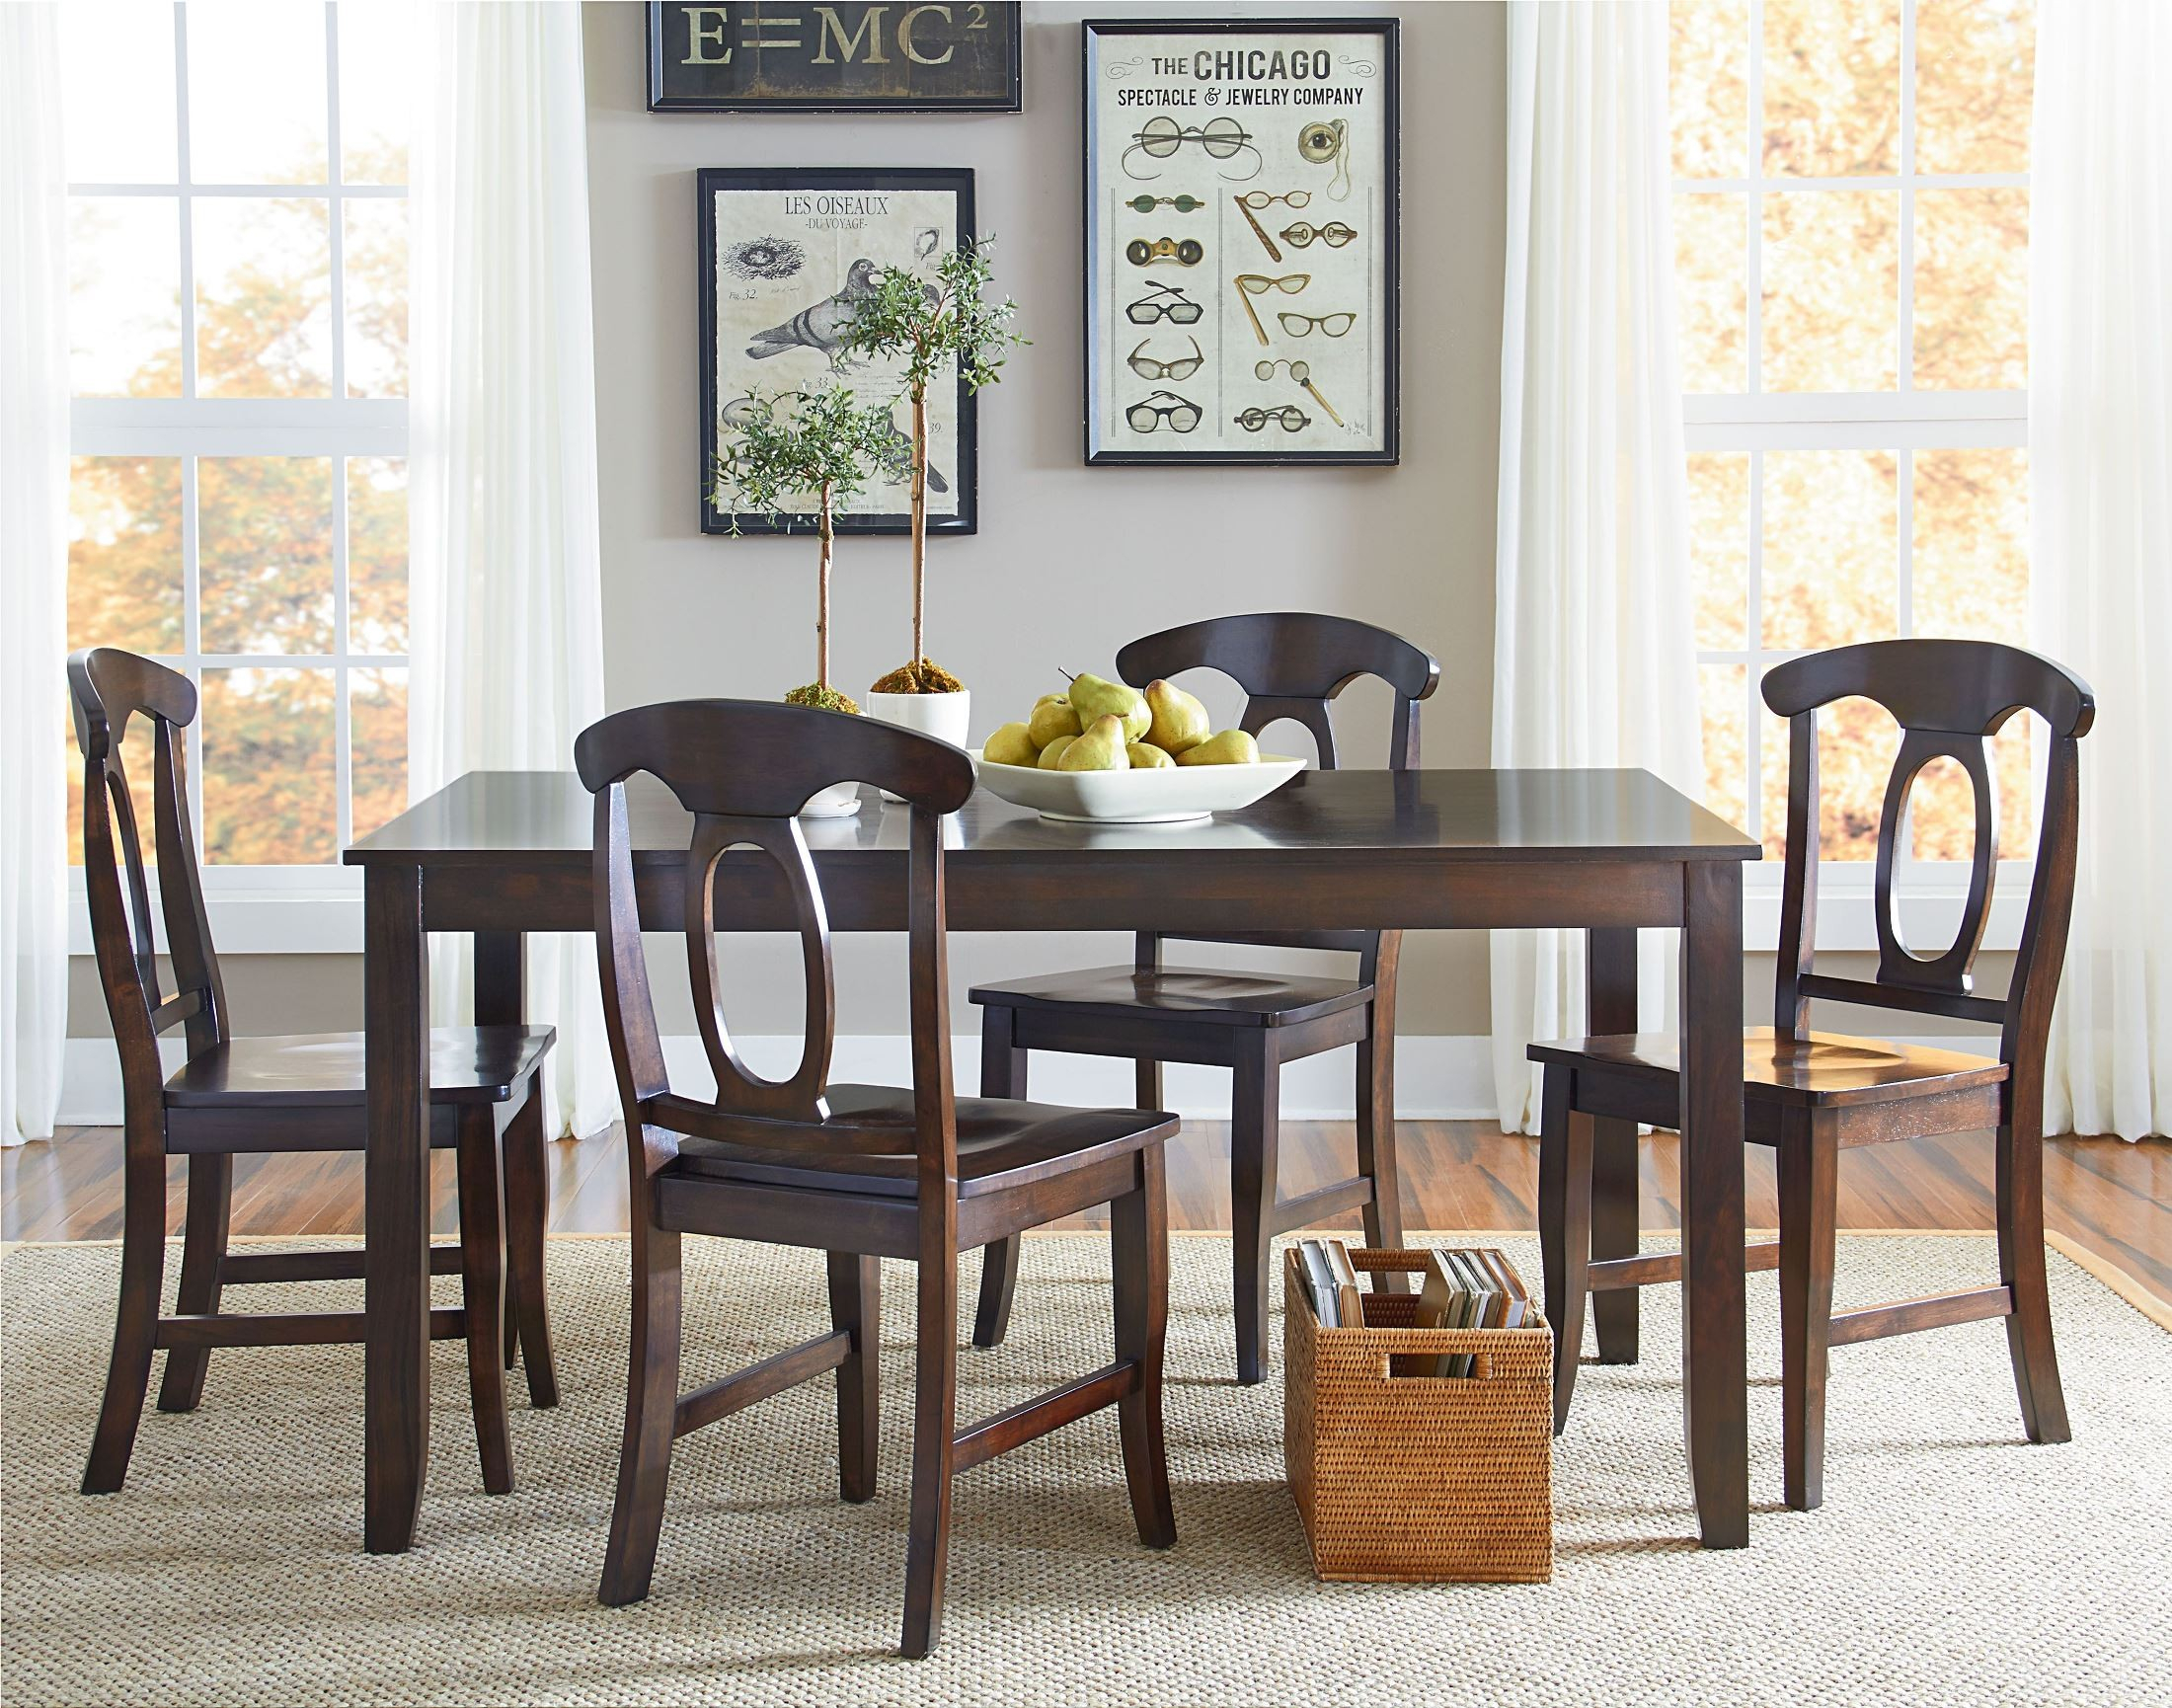 Larkin Antique Cherry 5 Piece Dining Room Set From Pertaining To Best And Newest Larkin  (View 5 of 15)